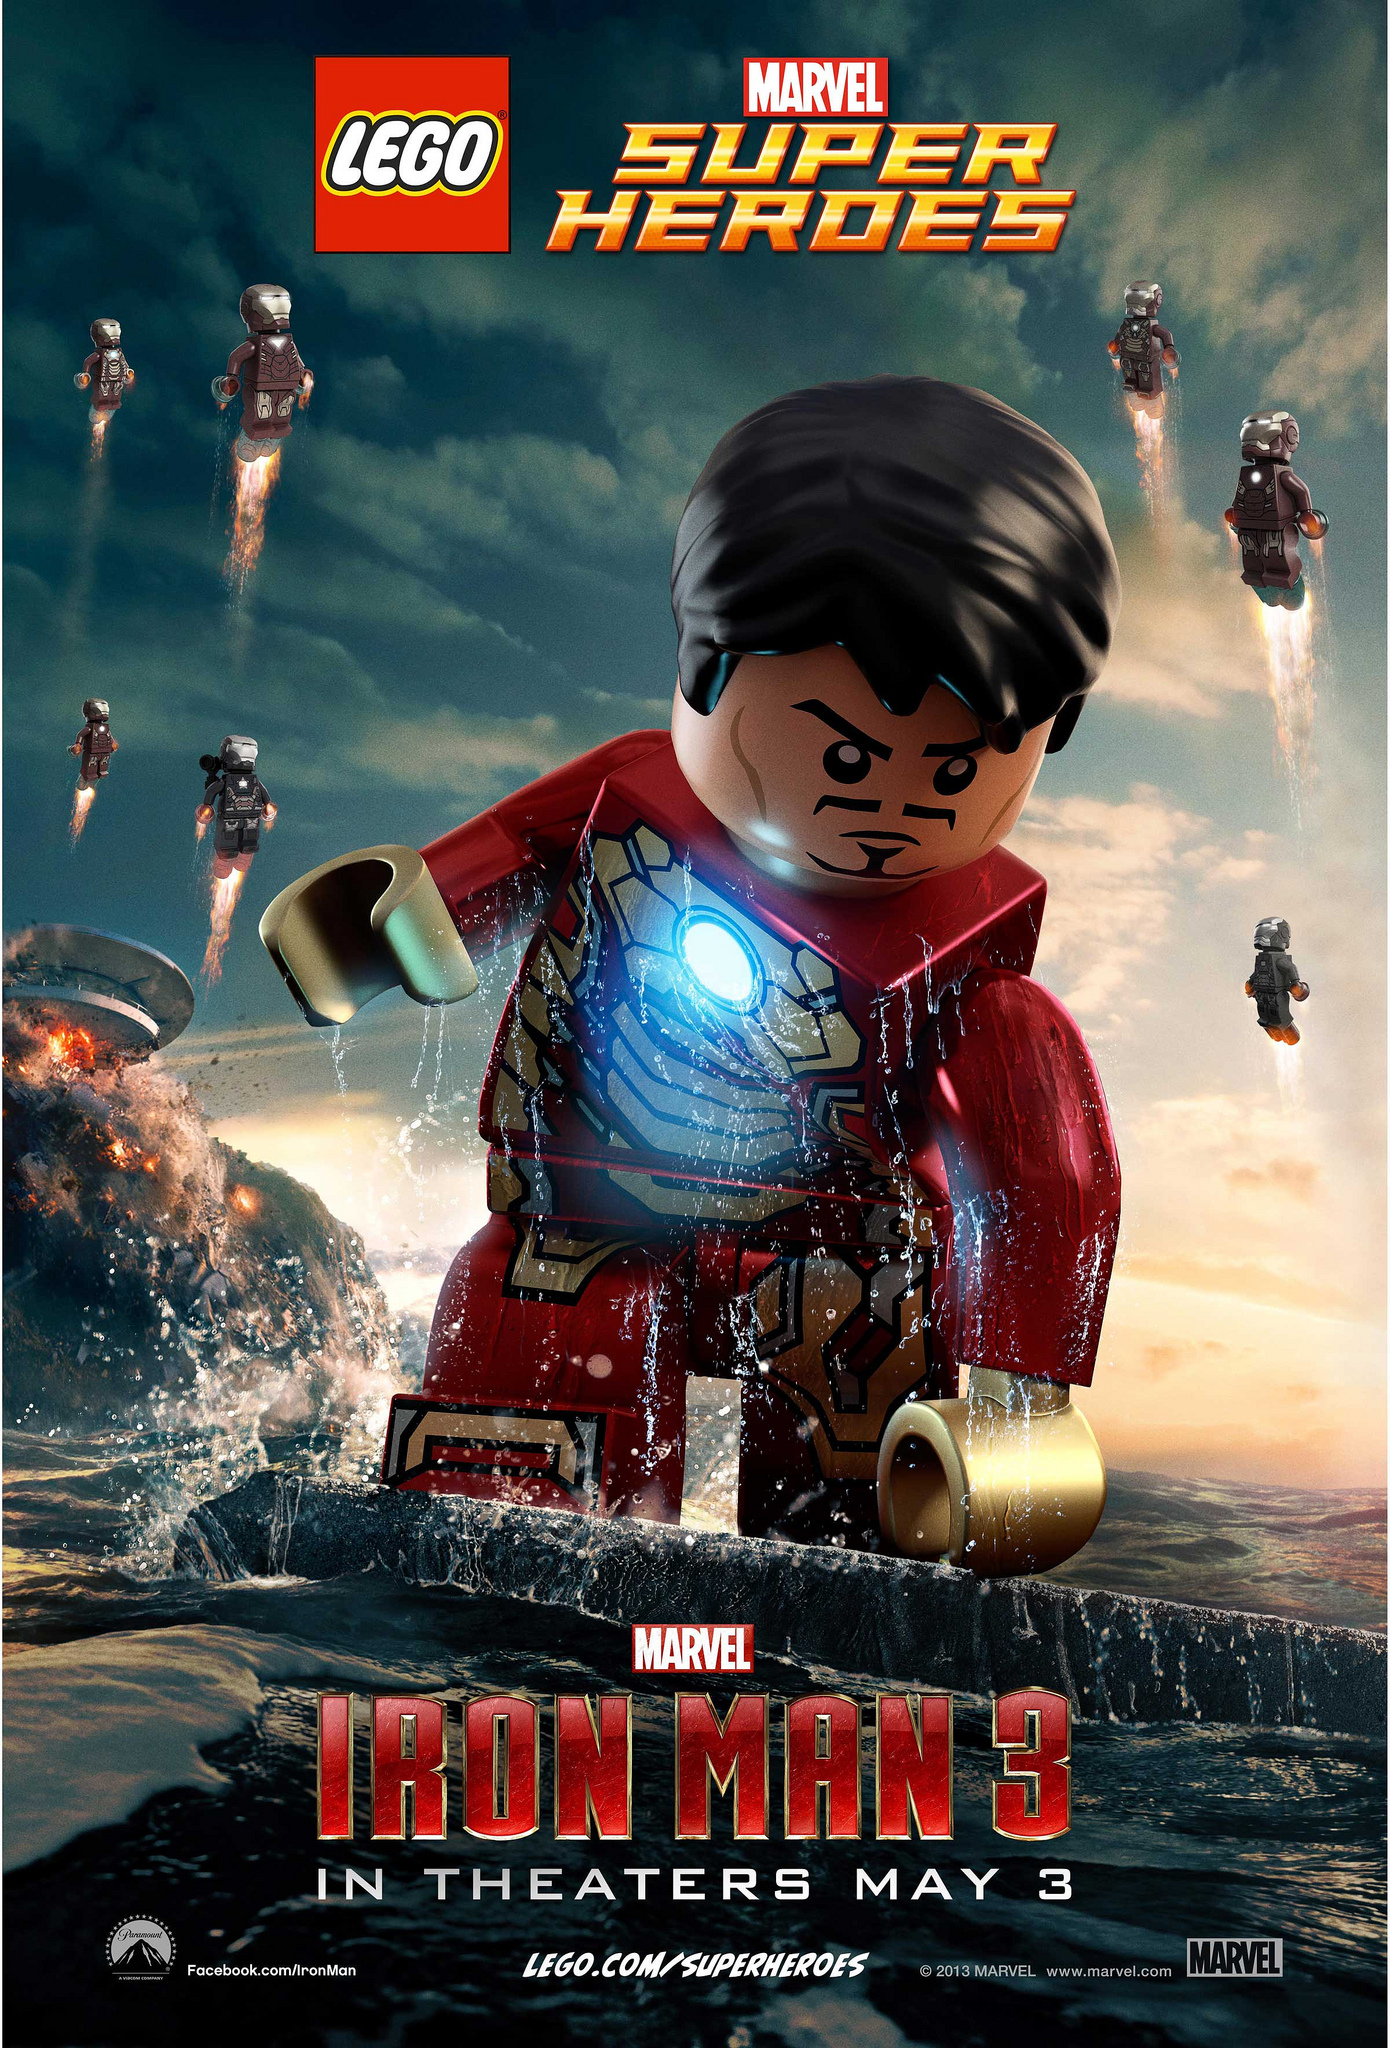 lego marvel super heroes iron man 3 poster 1